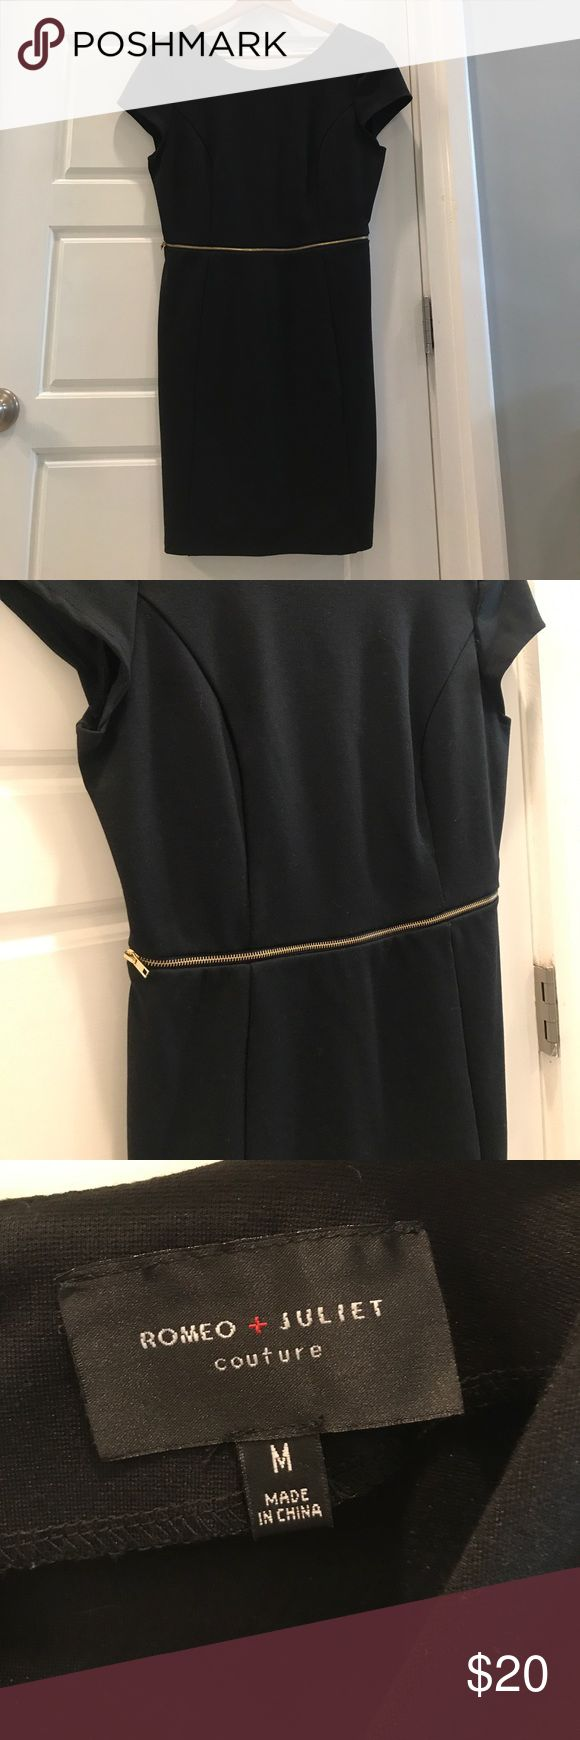 Romeo+Juliet Couture Black Sheath Dress M Black fitted sheath dress - short - size M - name brand from Saks outlet - only worn twice - gold zipper accent. This is the perfect LBD with an edge! 👗 Great Las Vegas, bachelorette party or going out dress! Romeo & Juliet Couture Dresses Mini